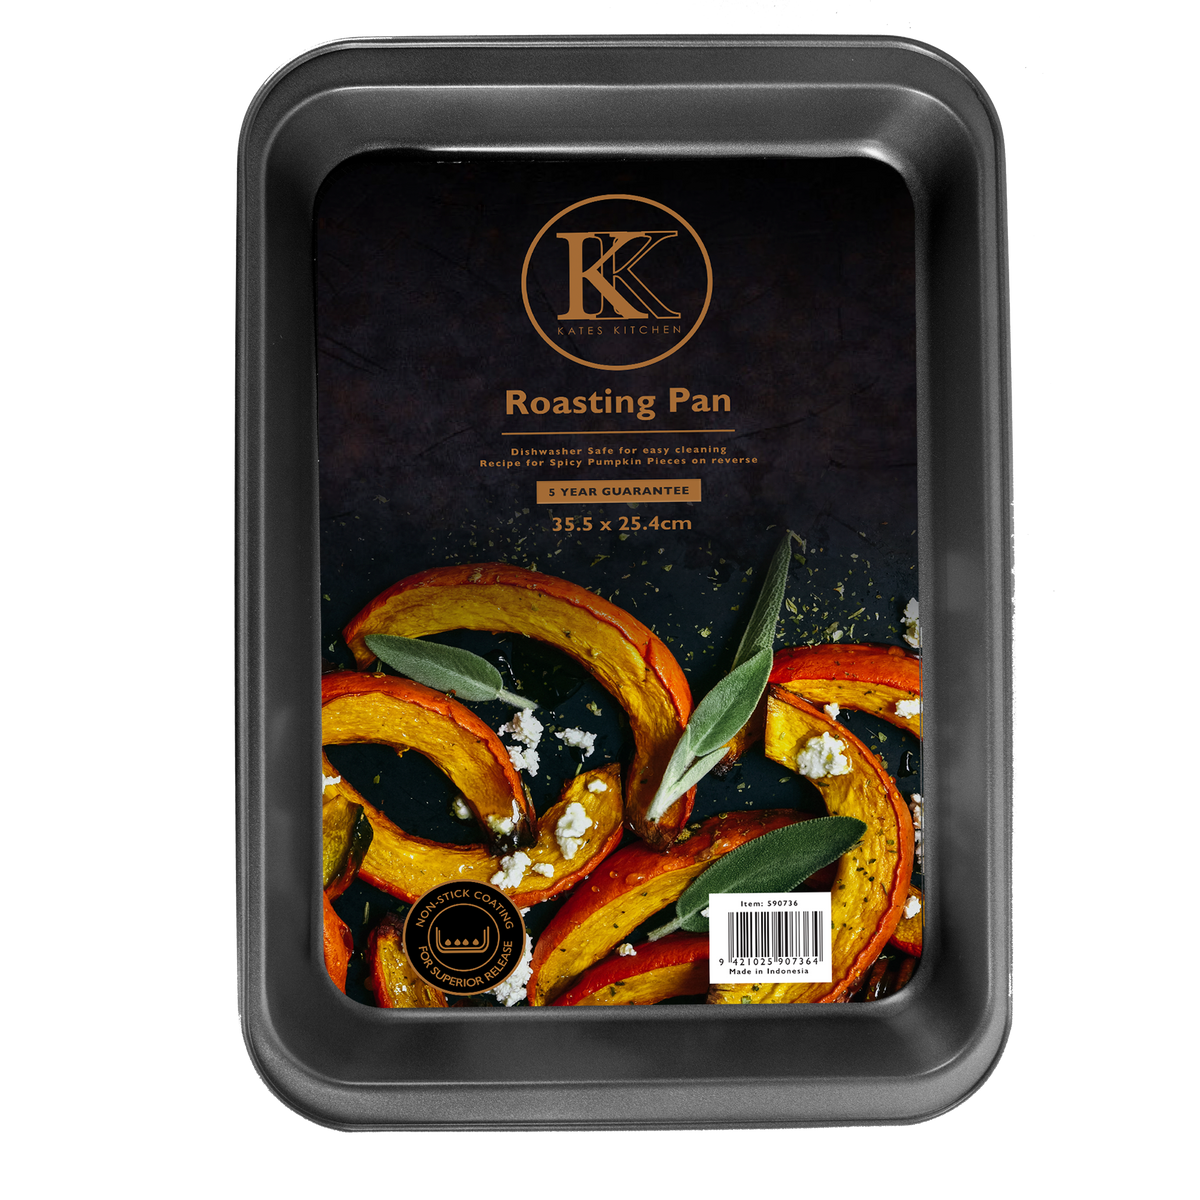 Kates Kitchen roasting dish  features a non stick design to give reliable baking results and years of excellent performance in the kitchen